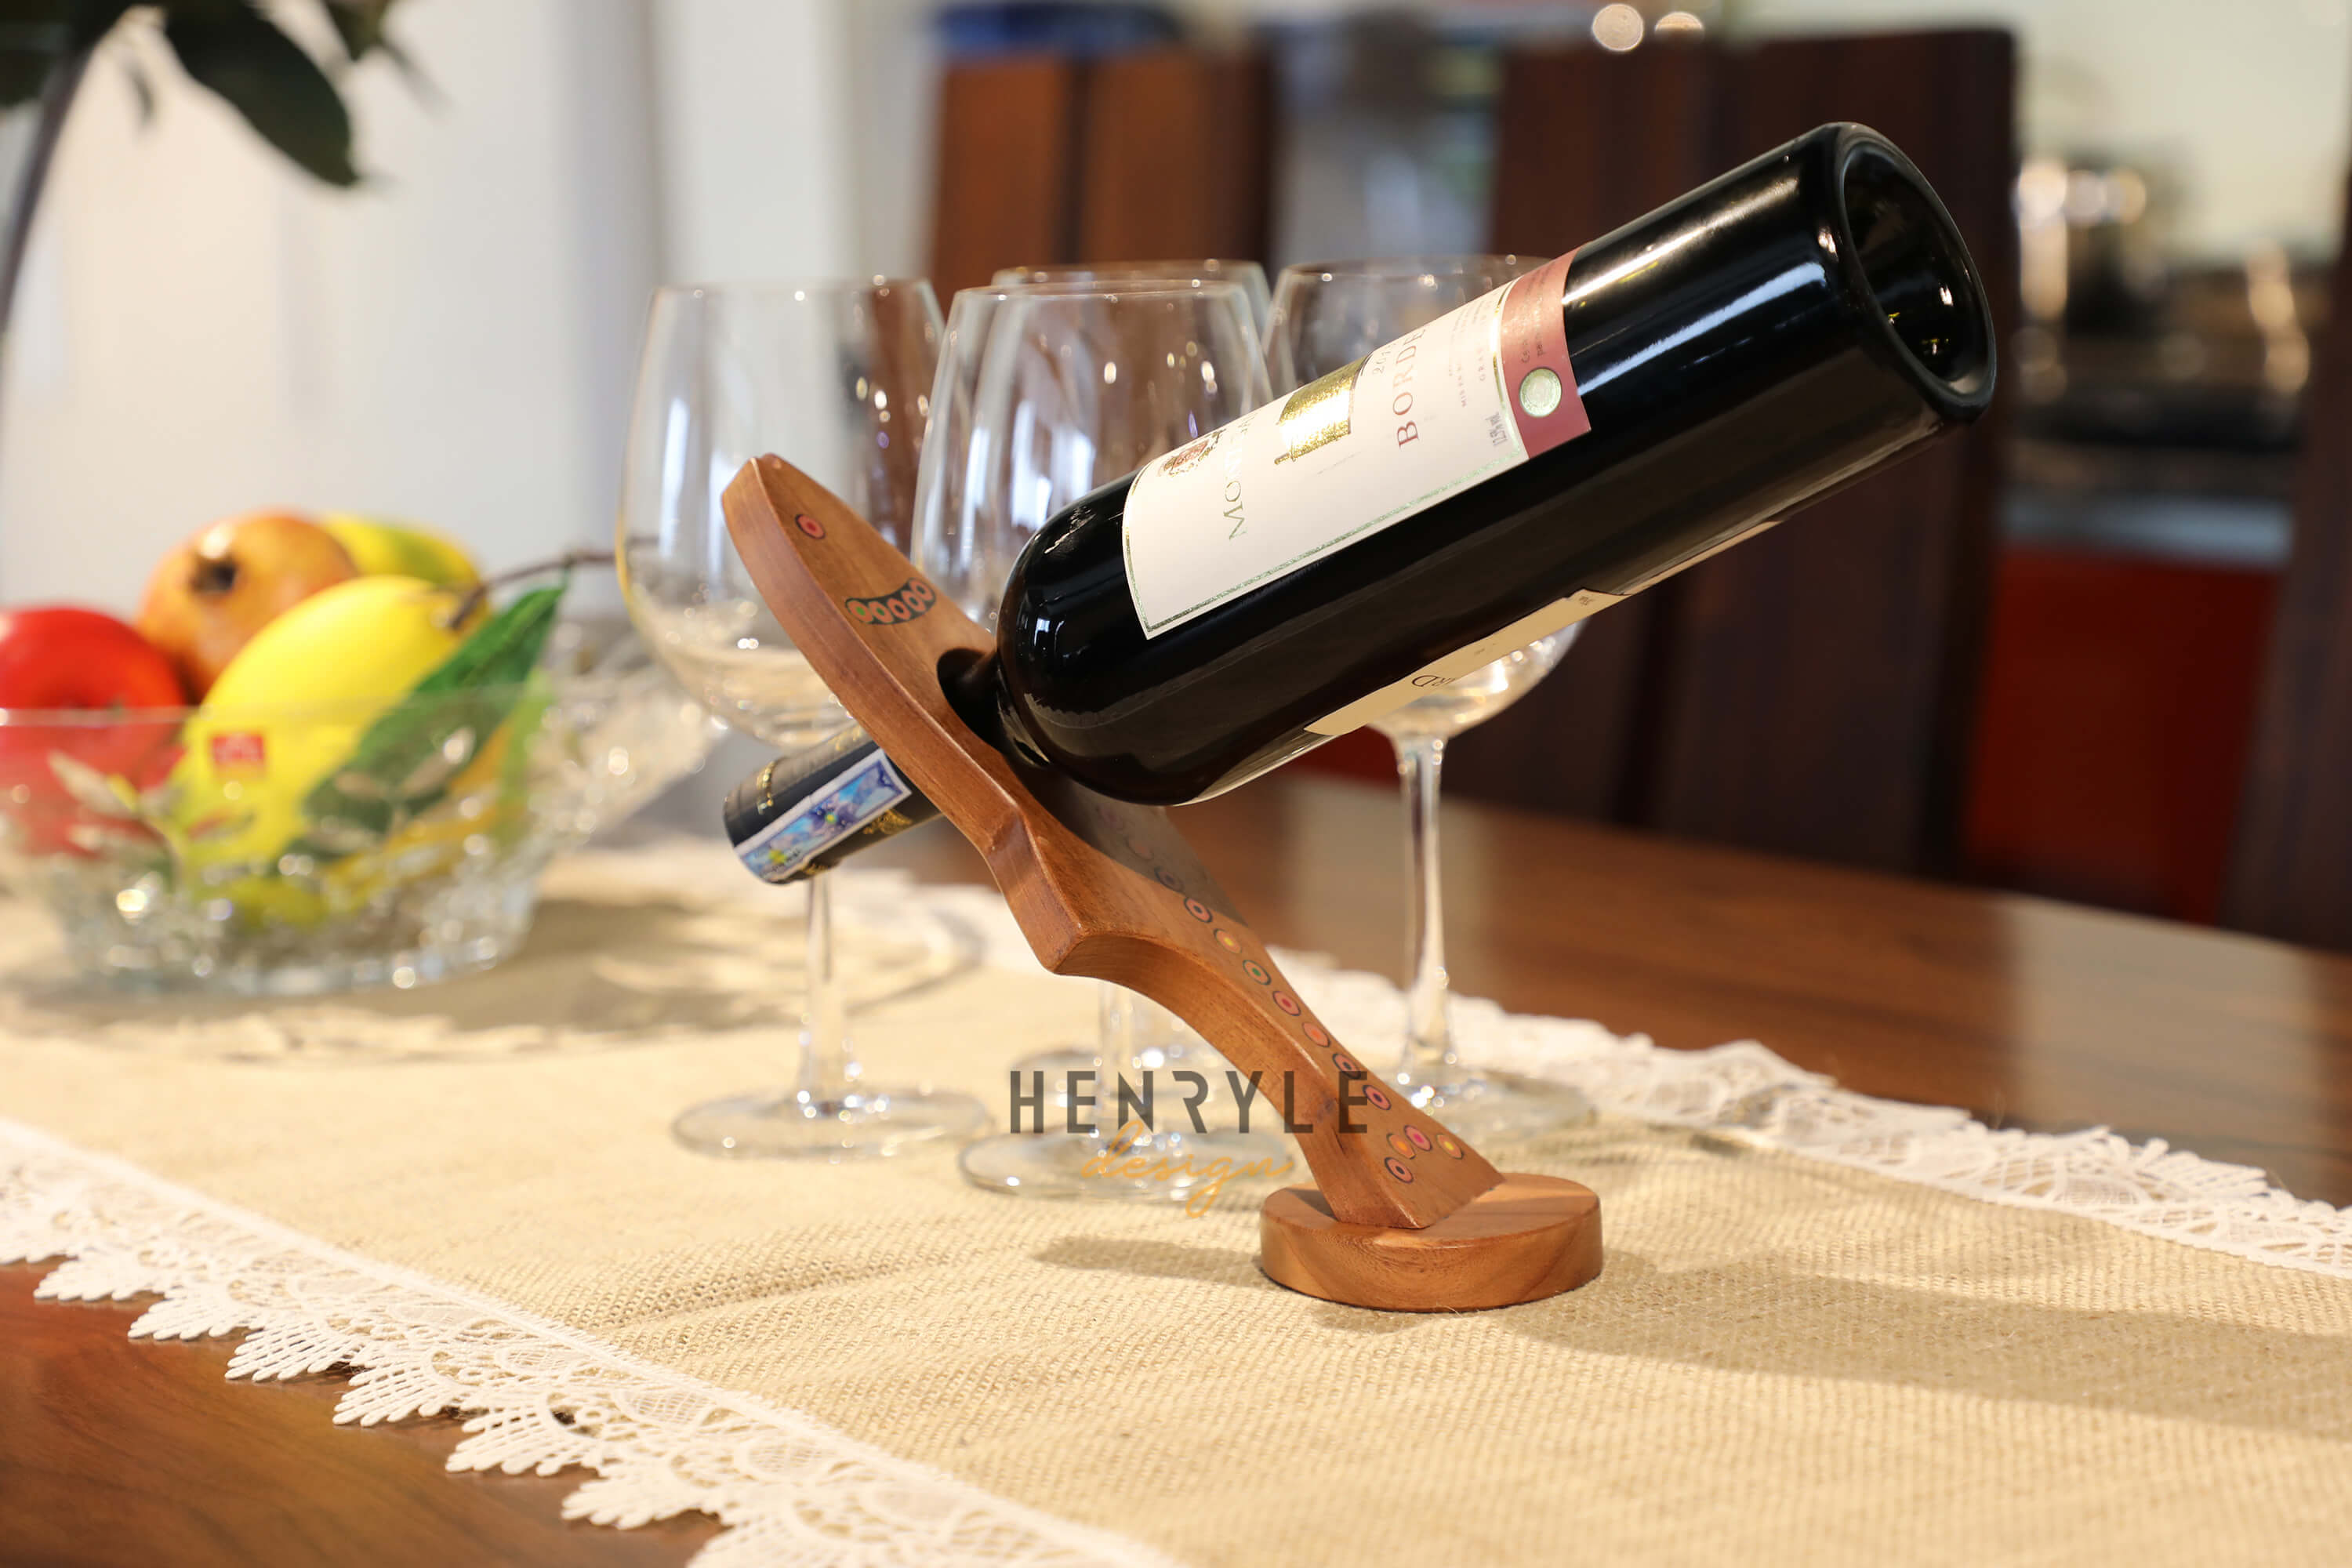 Colored-Pencil Free Standing Salmon-Shape Balancing Wine Bottle Holder